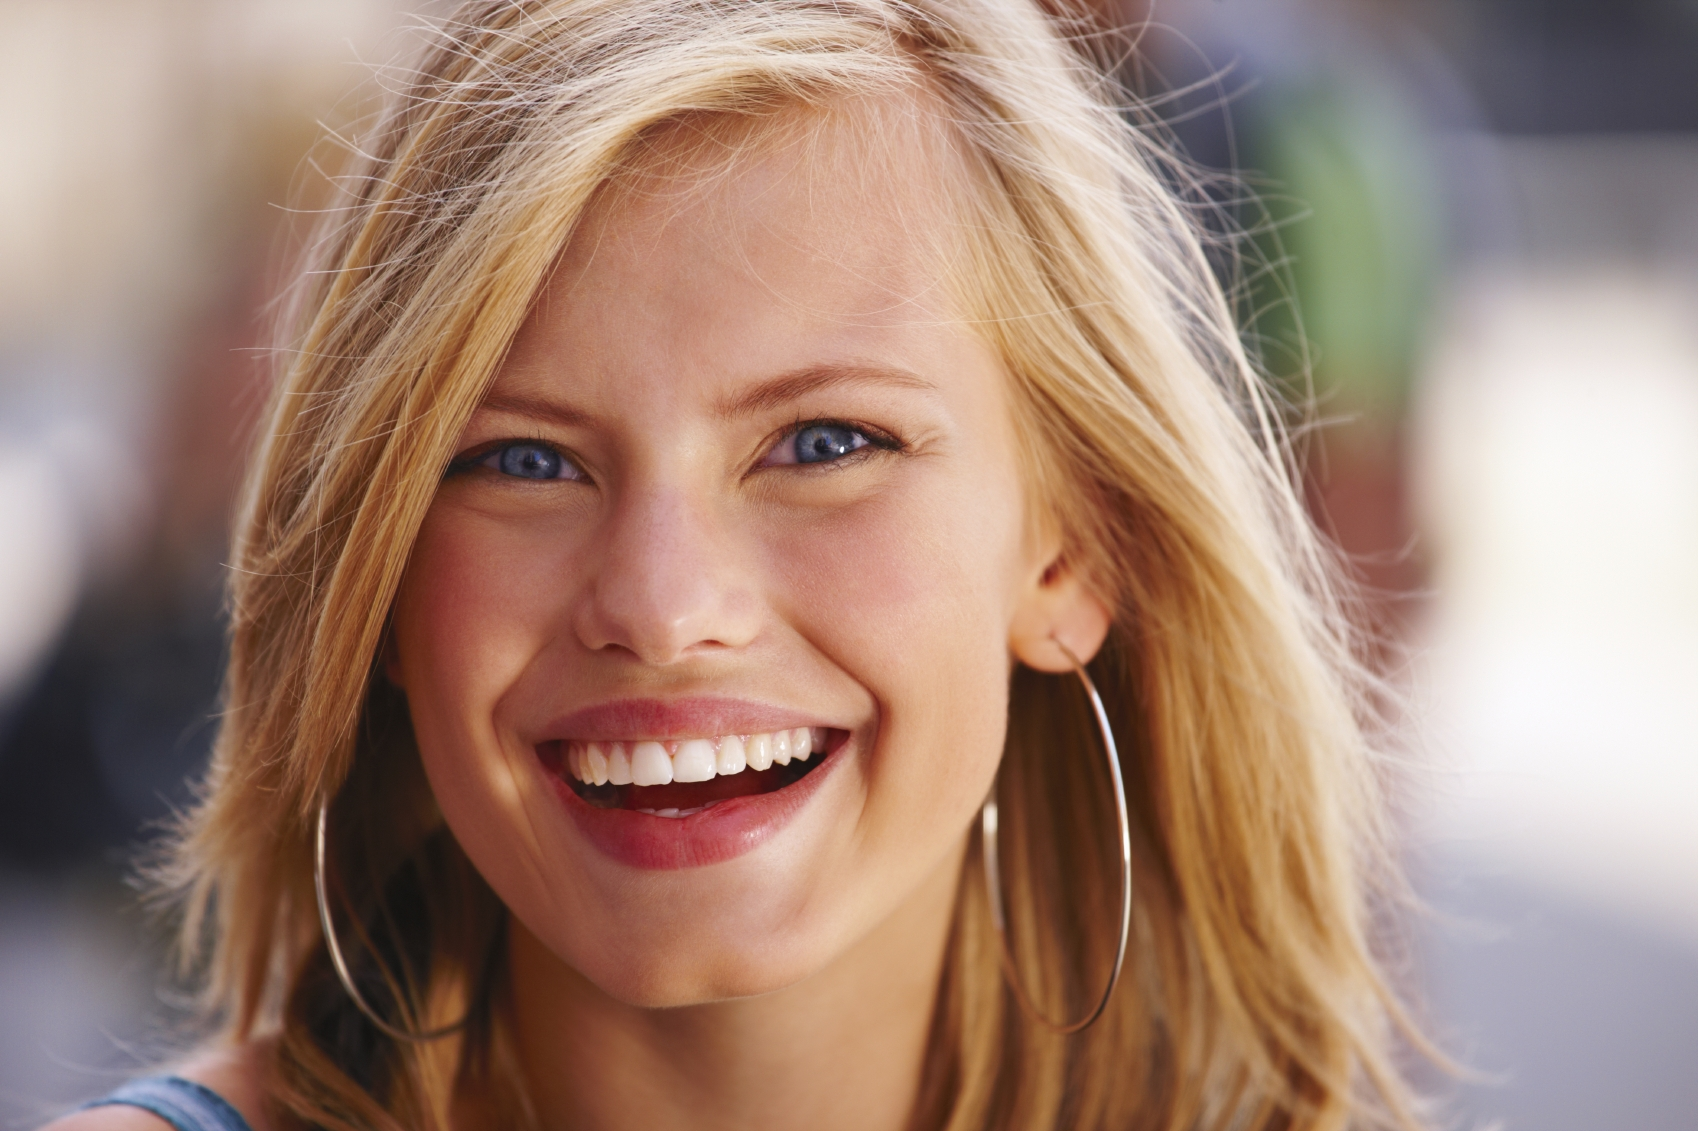 iStock_000006820972Medium- teenage girl.JPG